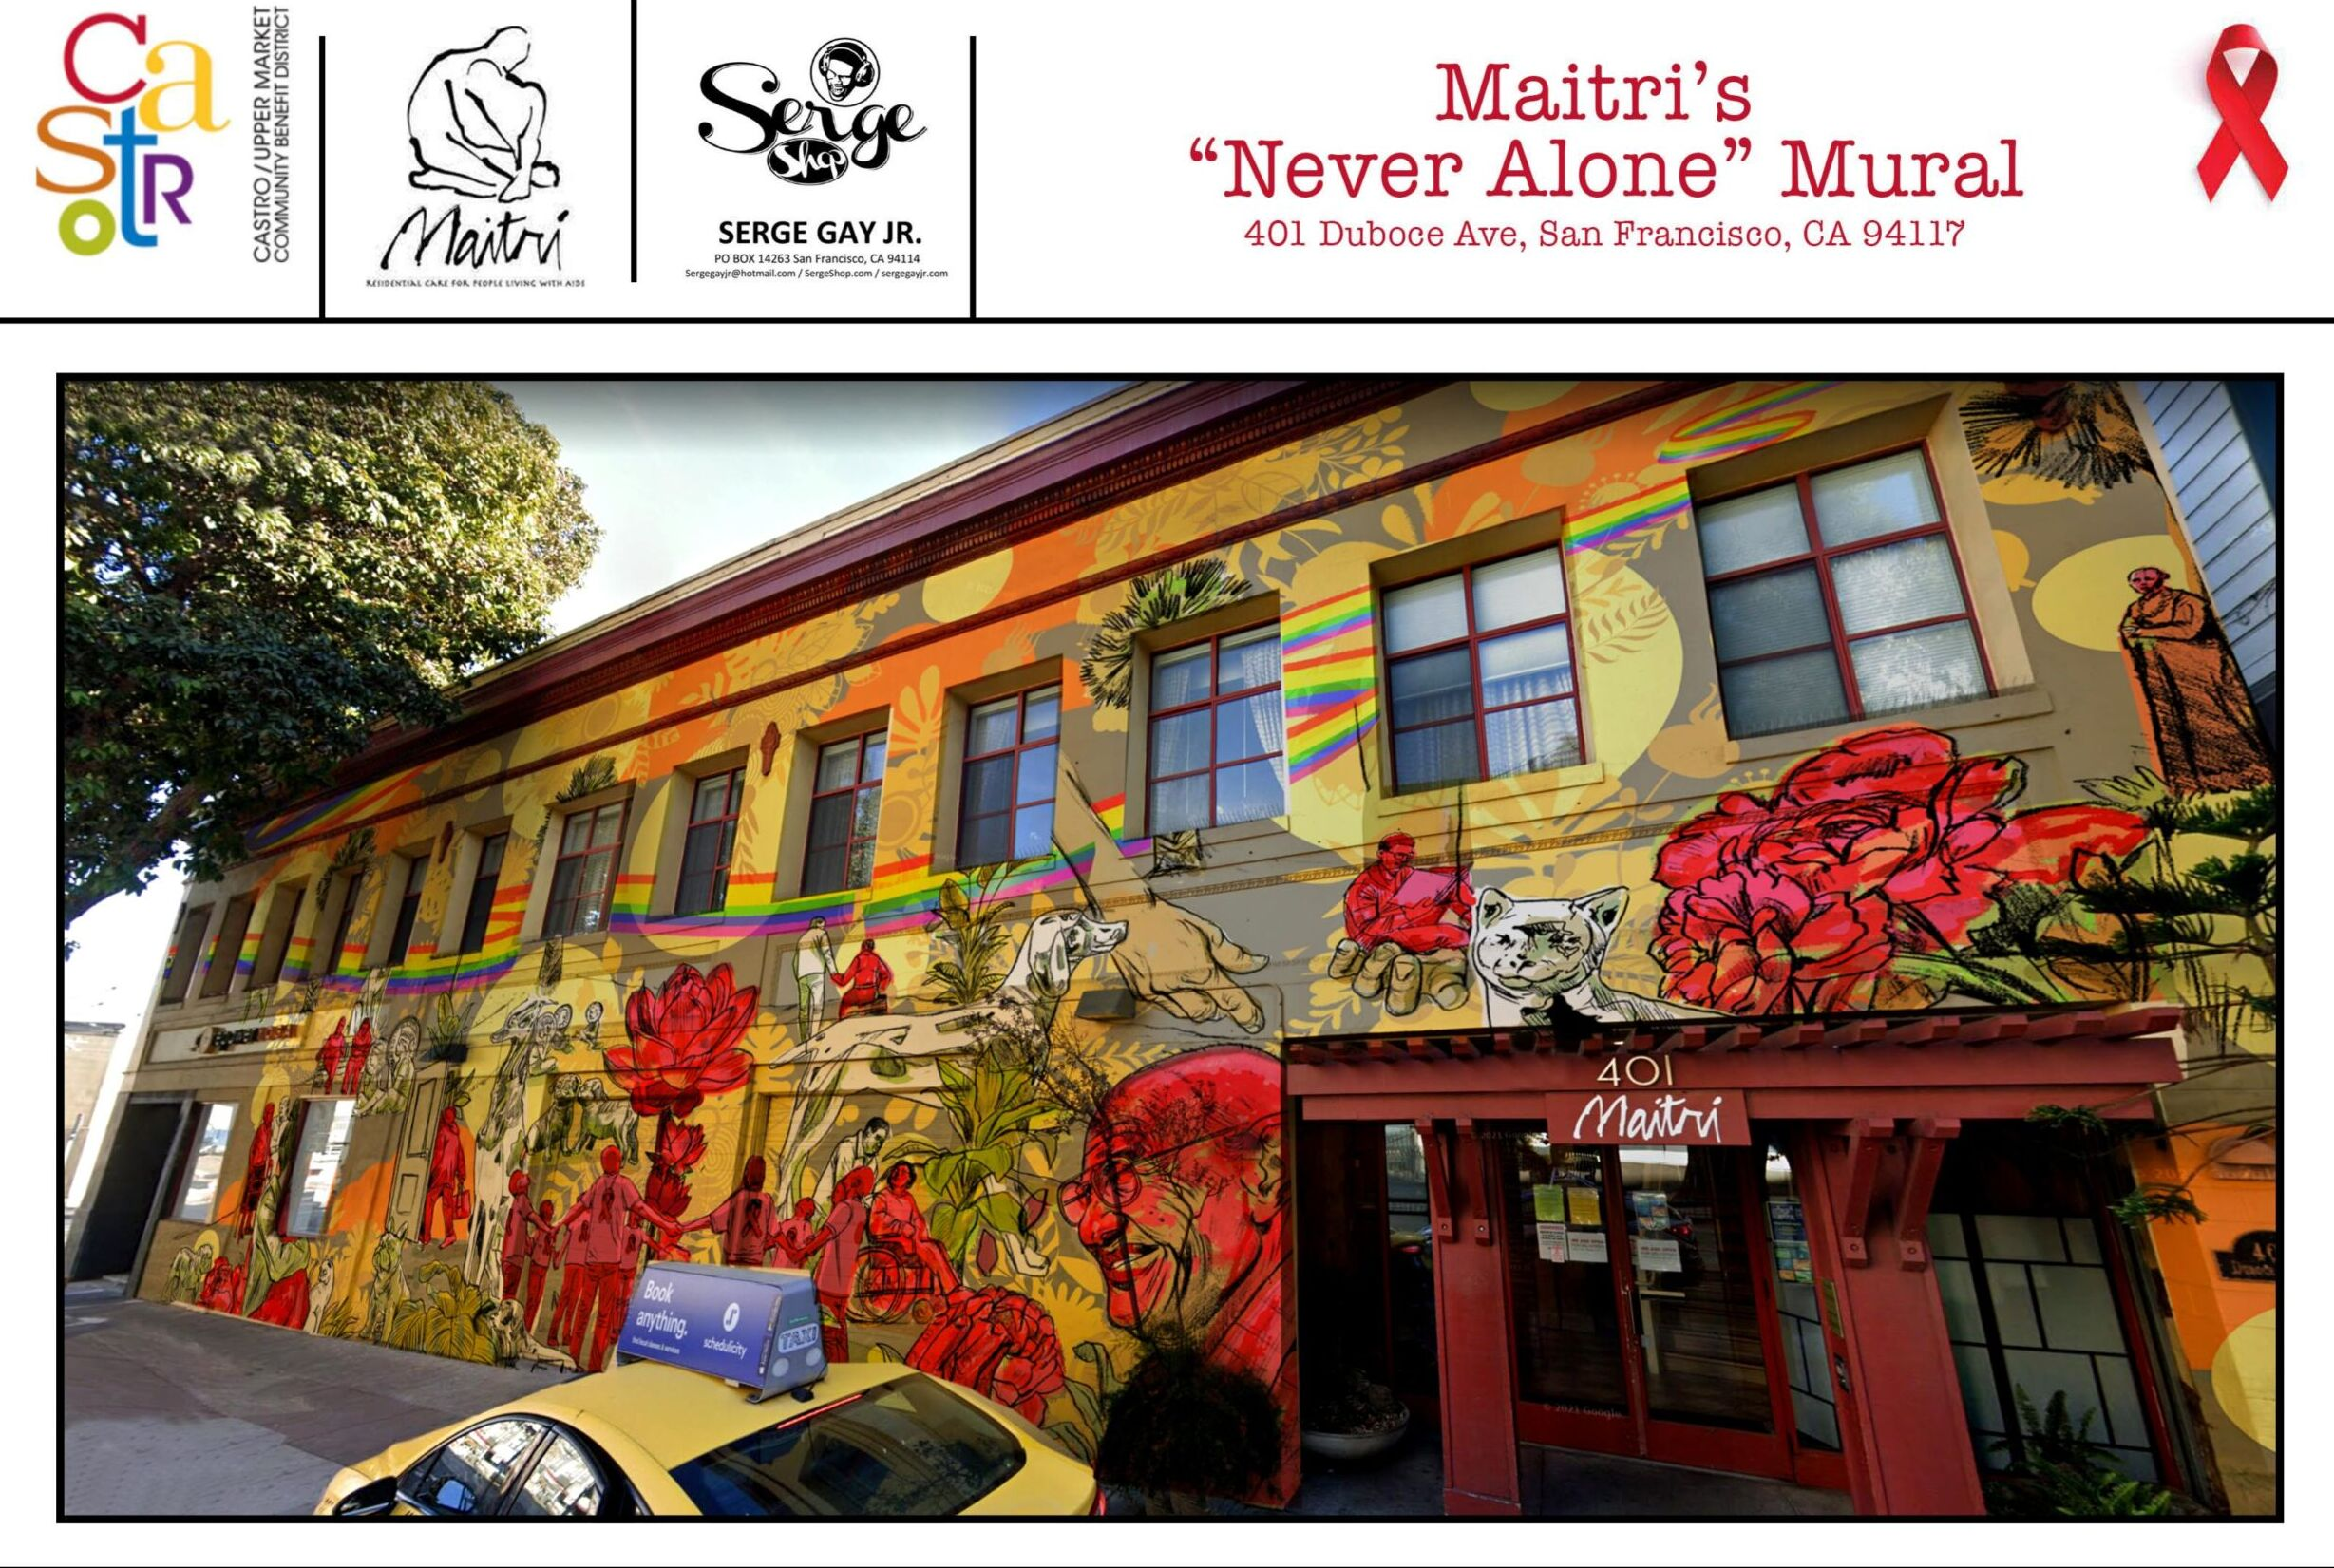 Maitri's Never Alone Mural by Serge Gay, Jr.